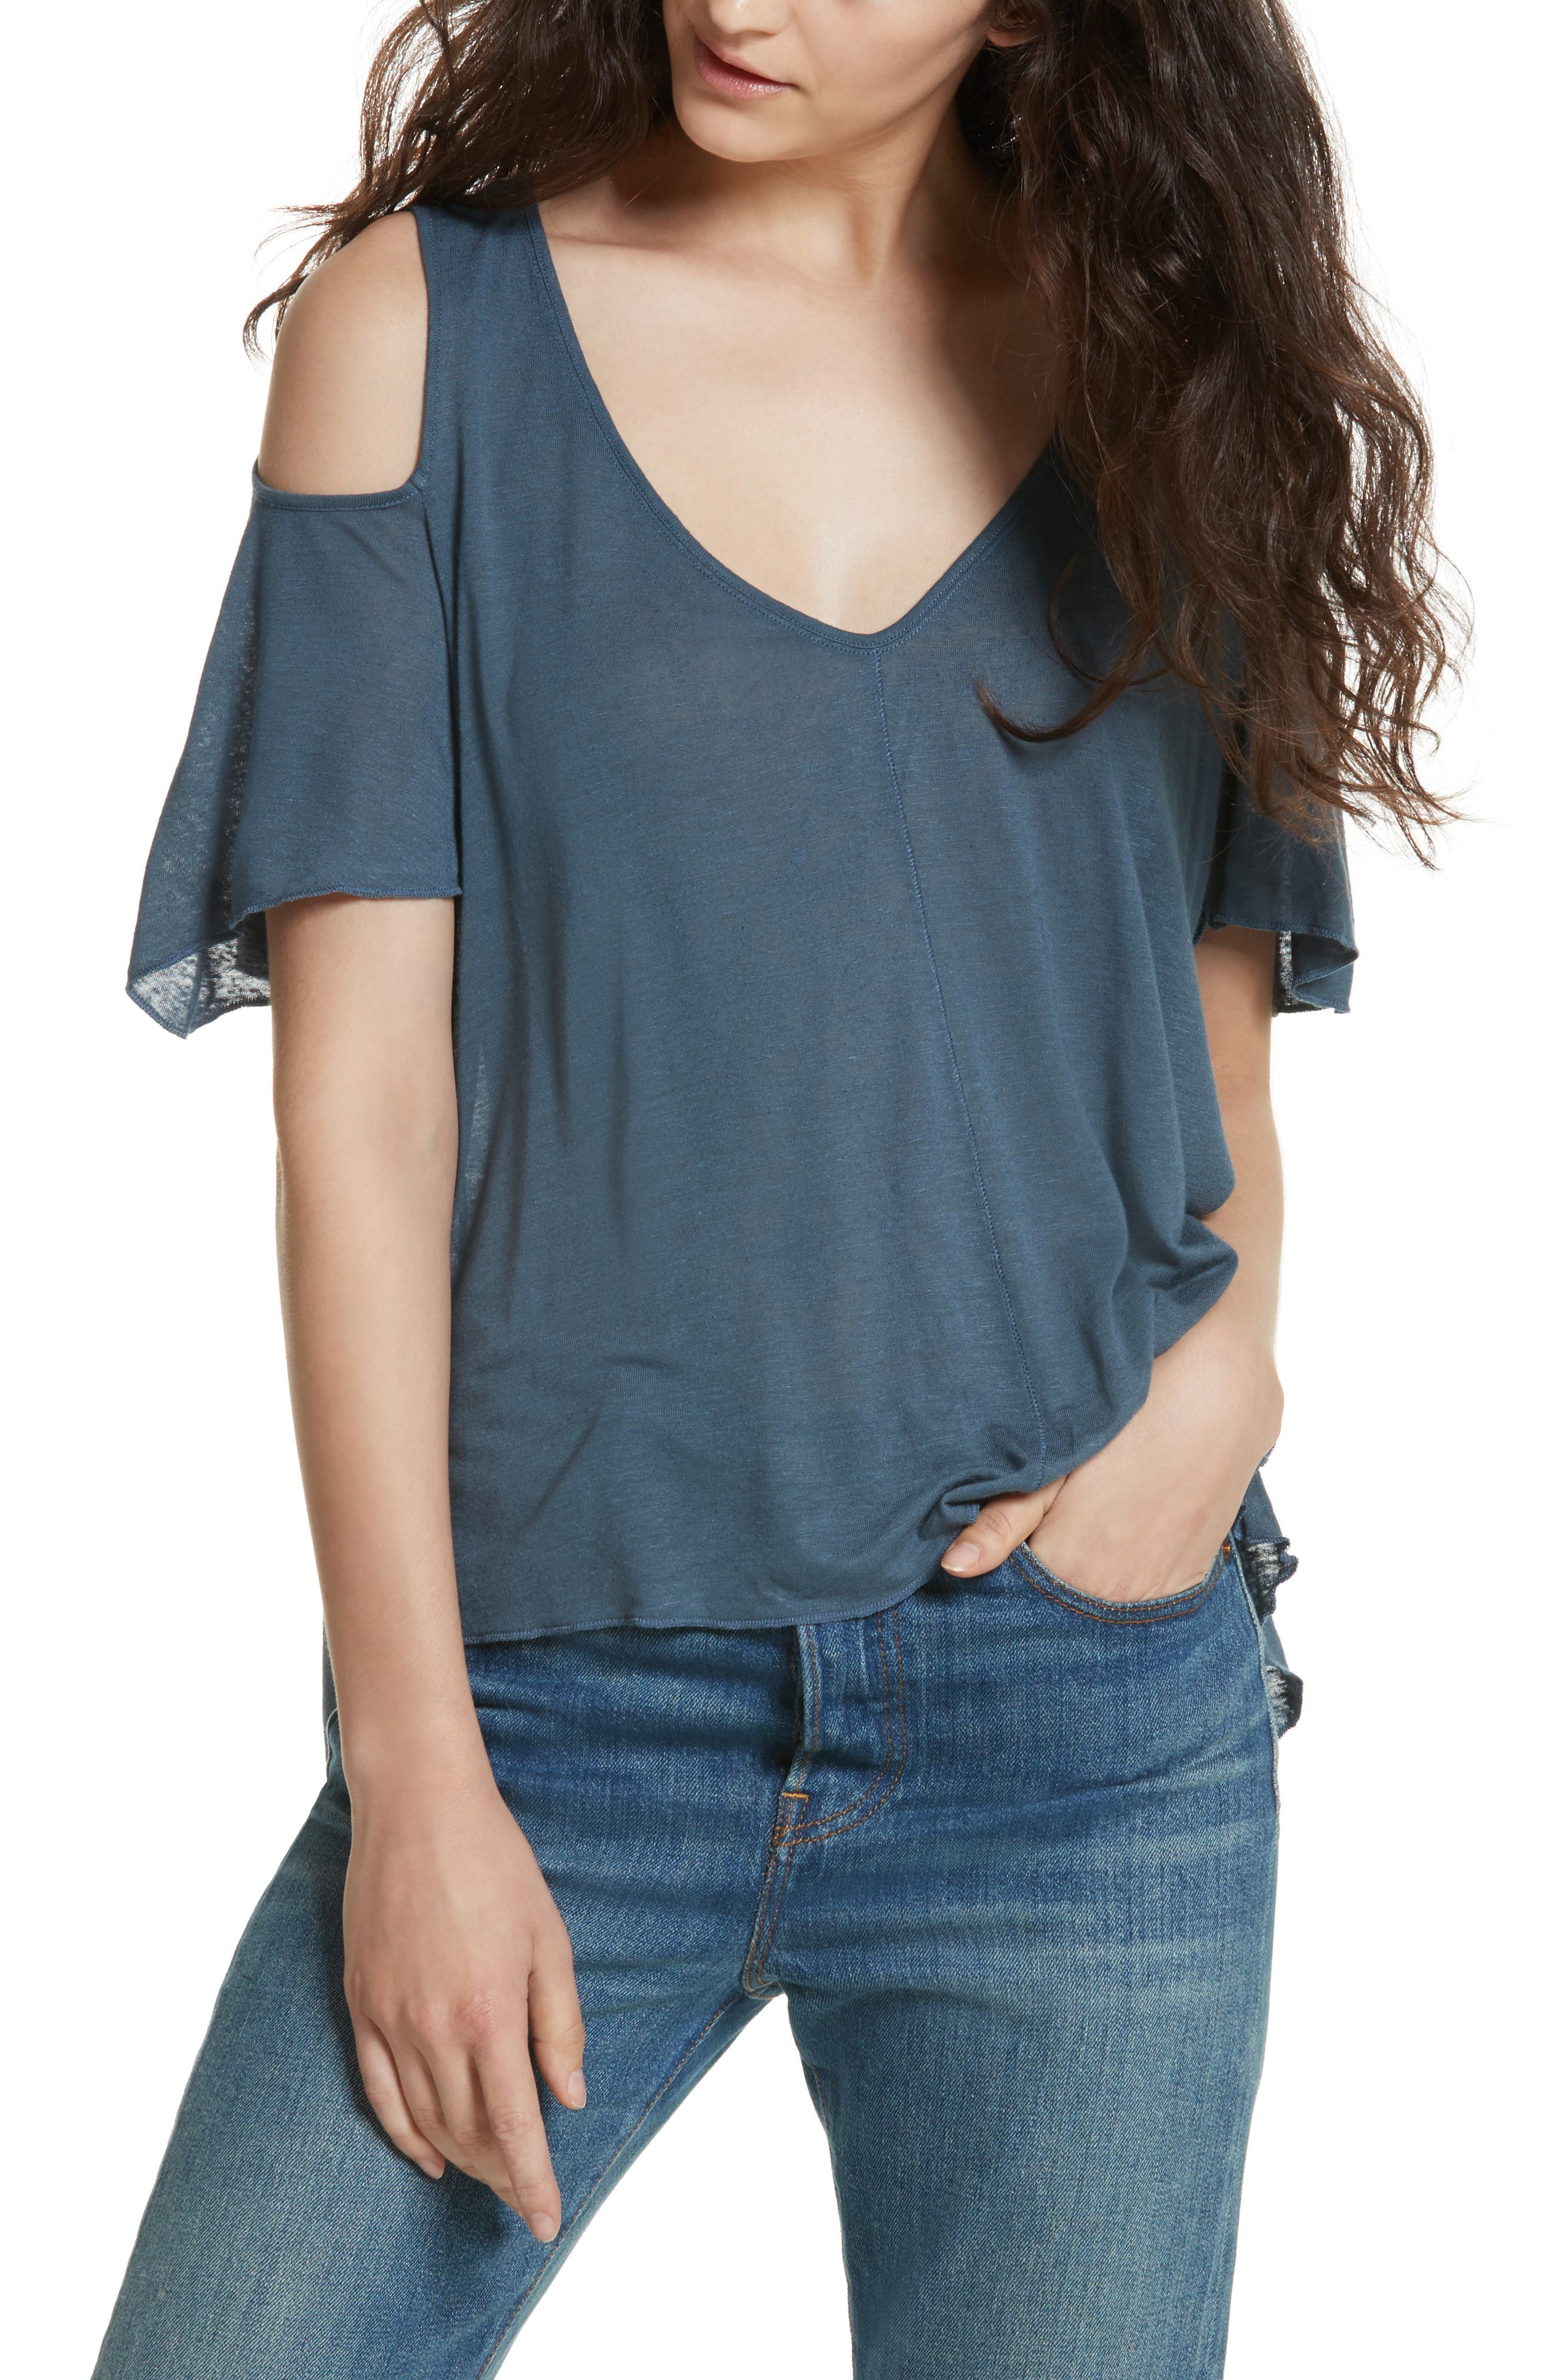 FREE PEOPLE, Bittersweet Cold Shoulder Top, Main thumbnail 1, color, 400